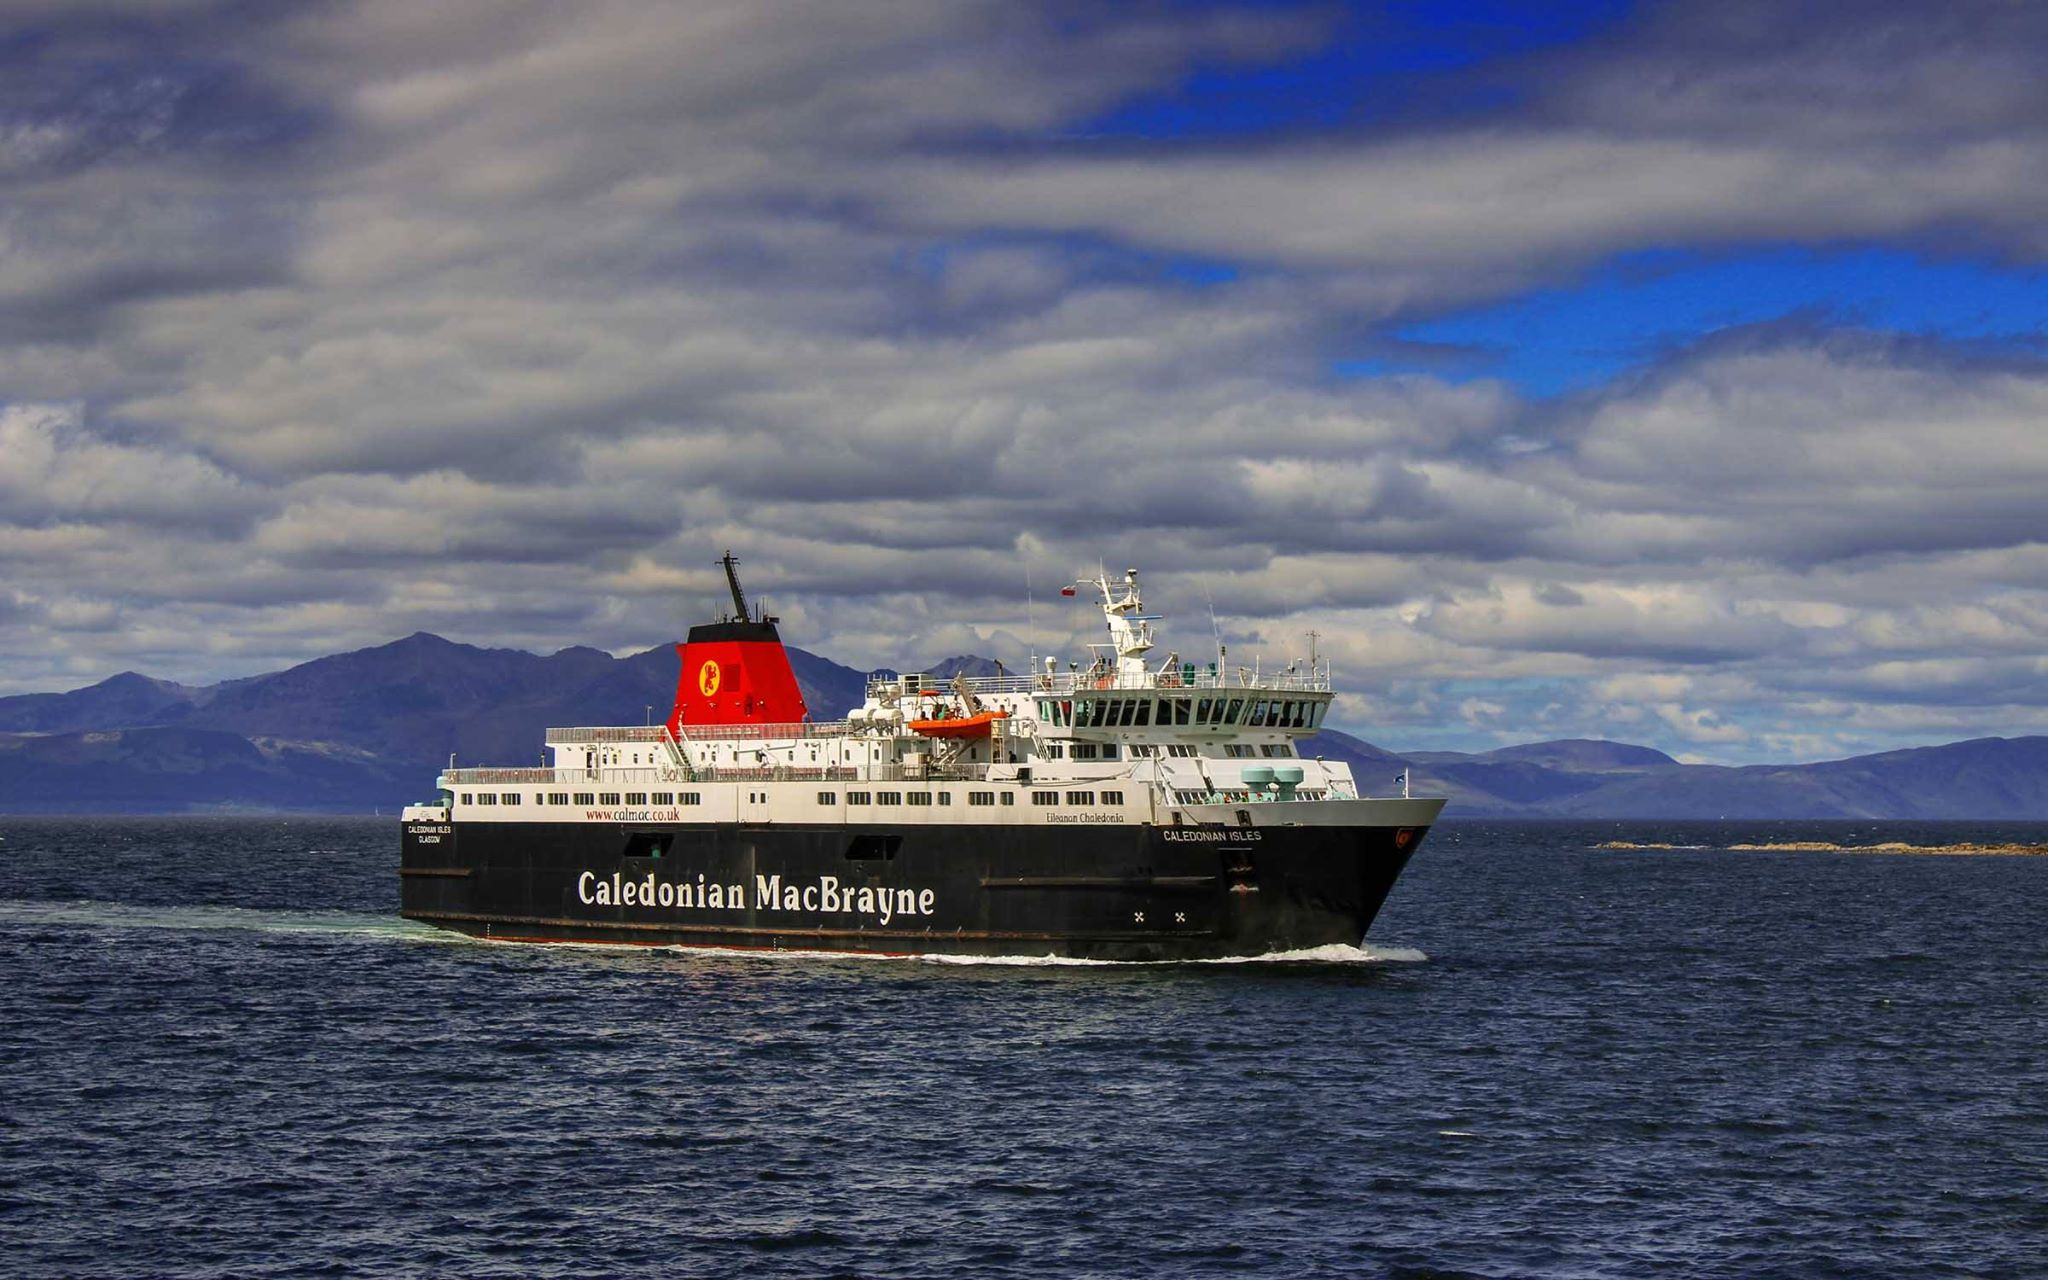 Caledonian Isles arriving at Ardrossan with Arran behind (Ships of CalMac)